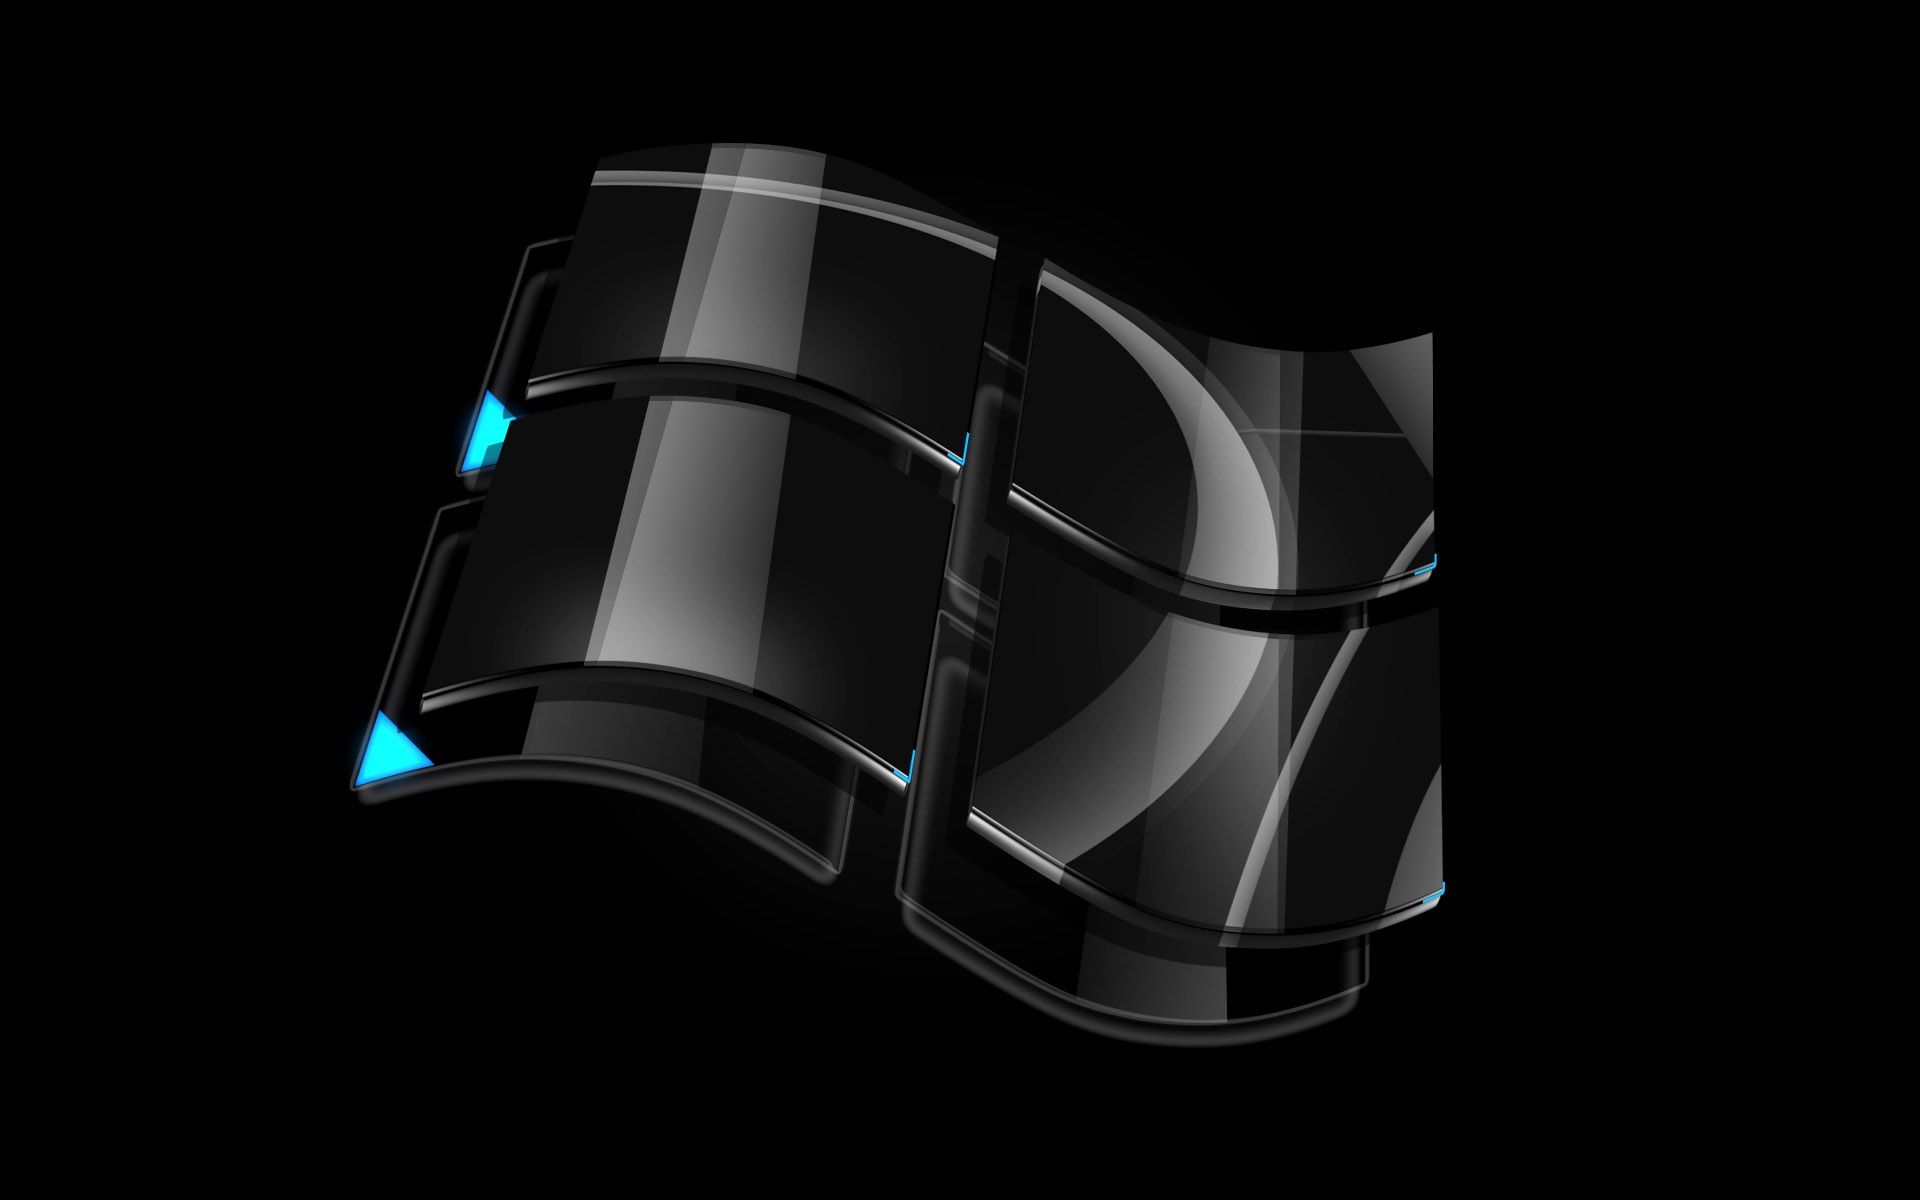 Windows Dark Glass Logo Wallpapers HD Wallpapers 1920x1200